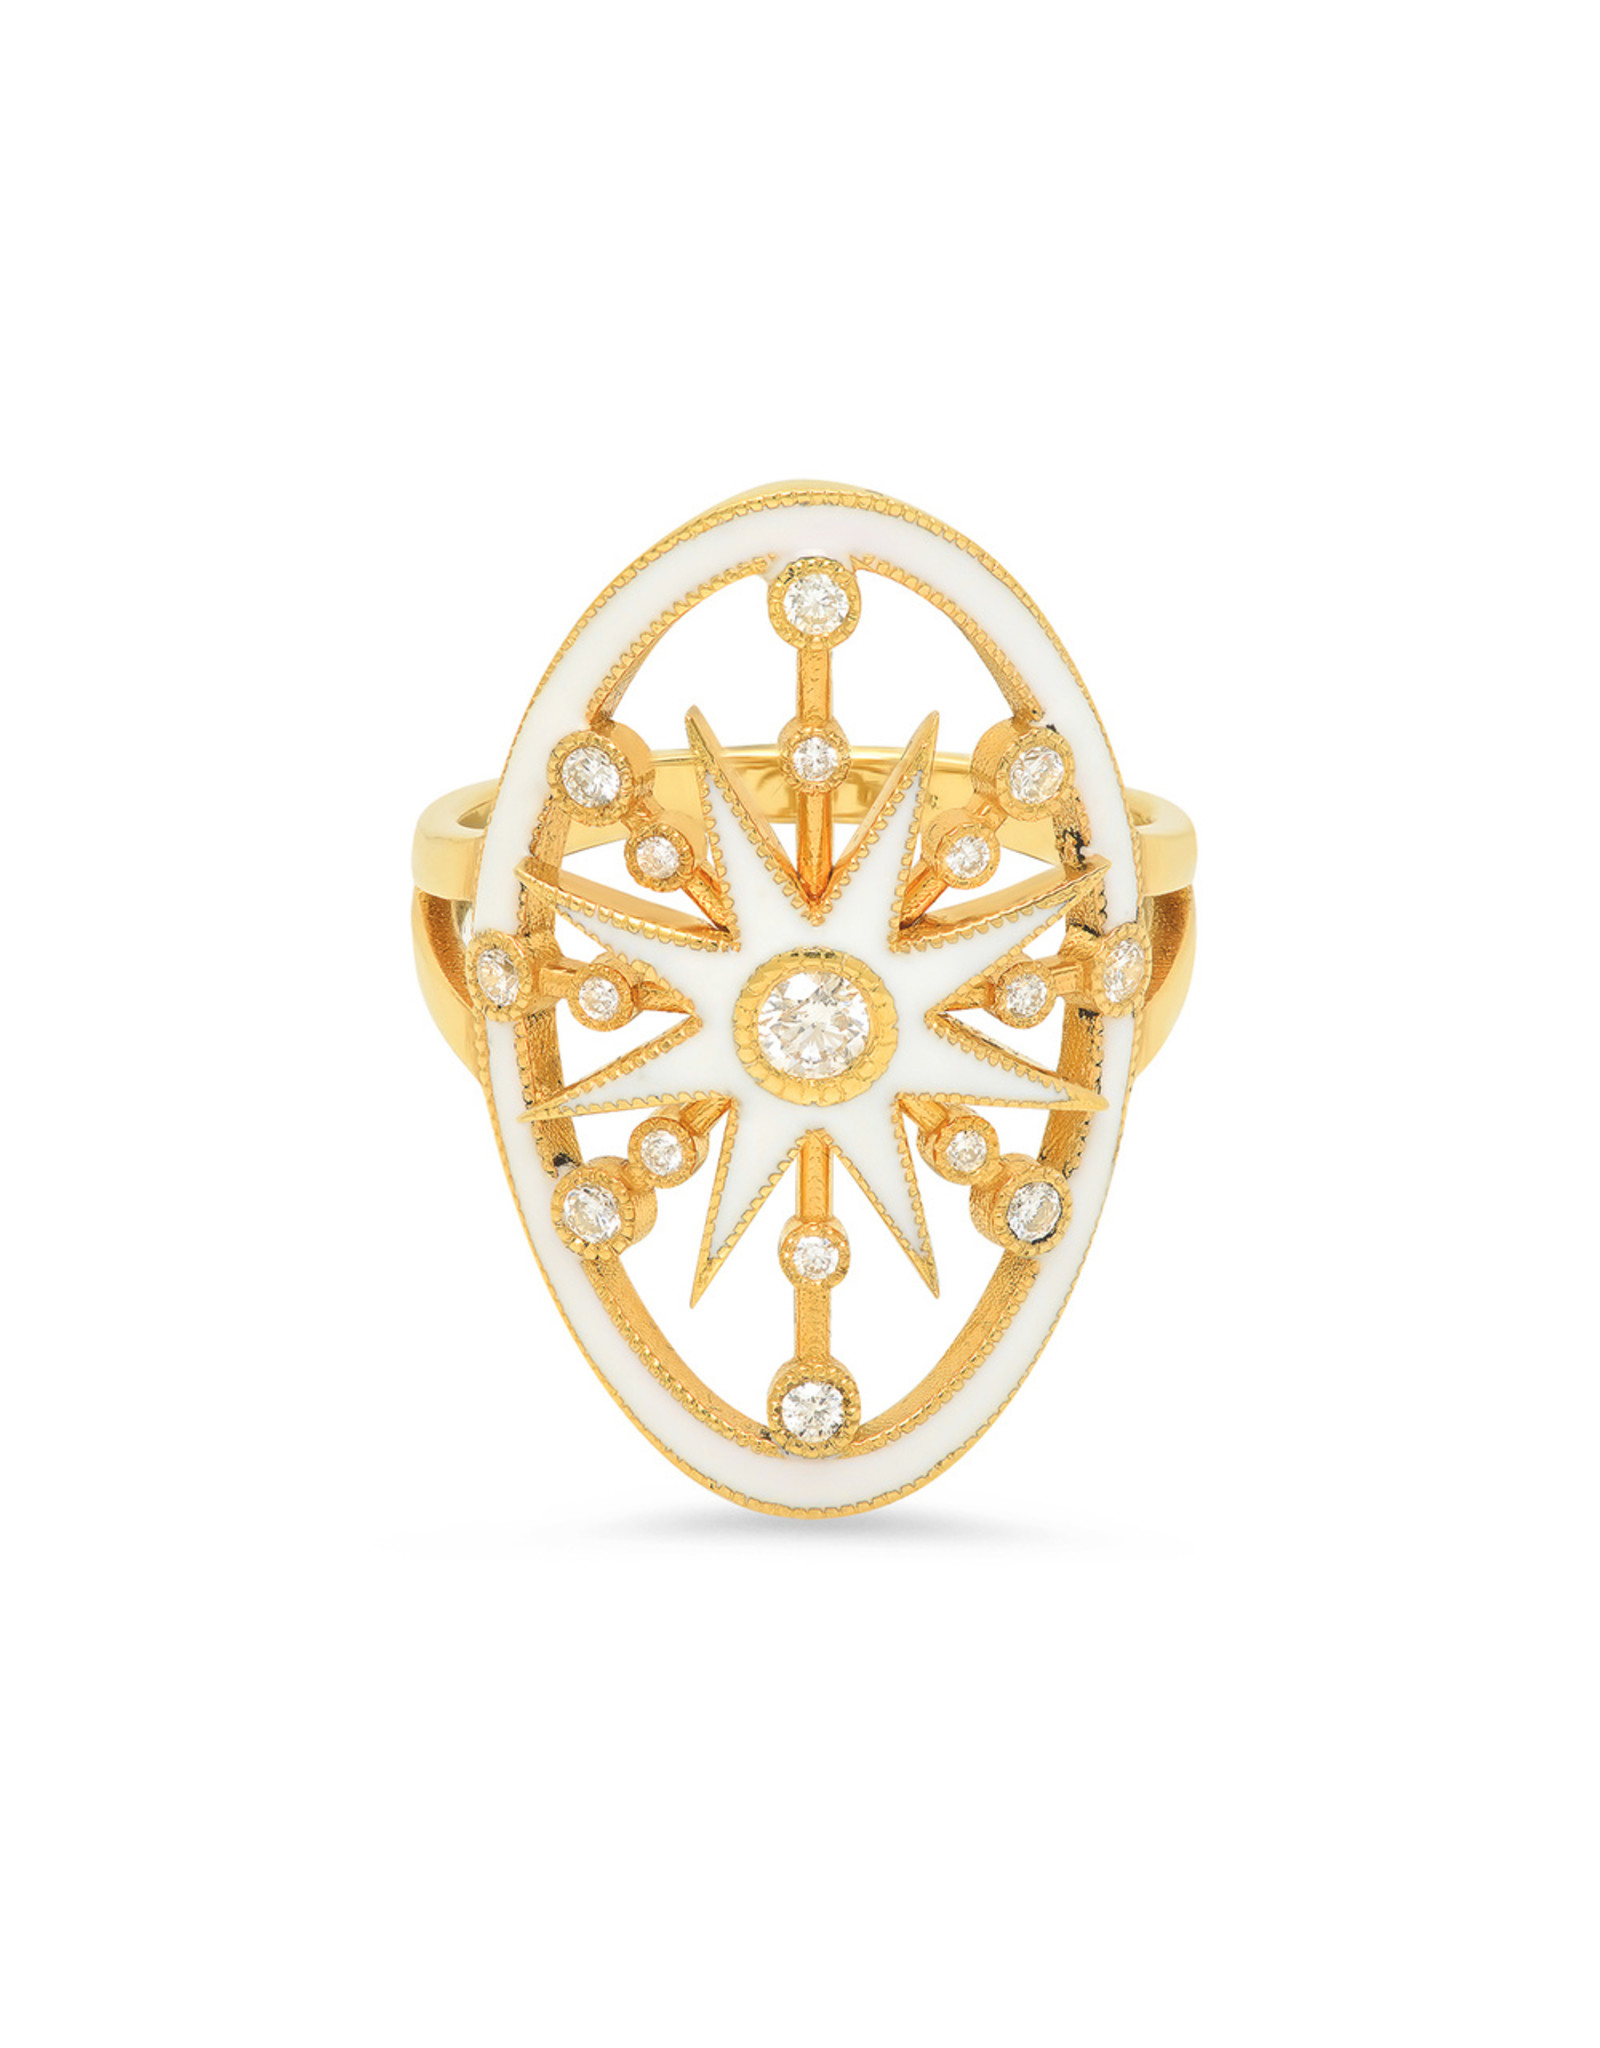 Colette Jewelry Colette White Enamel Star Ring (Color: Yellow Gold / White, Size: 6.5)